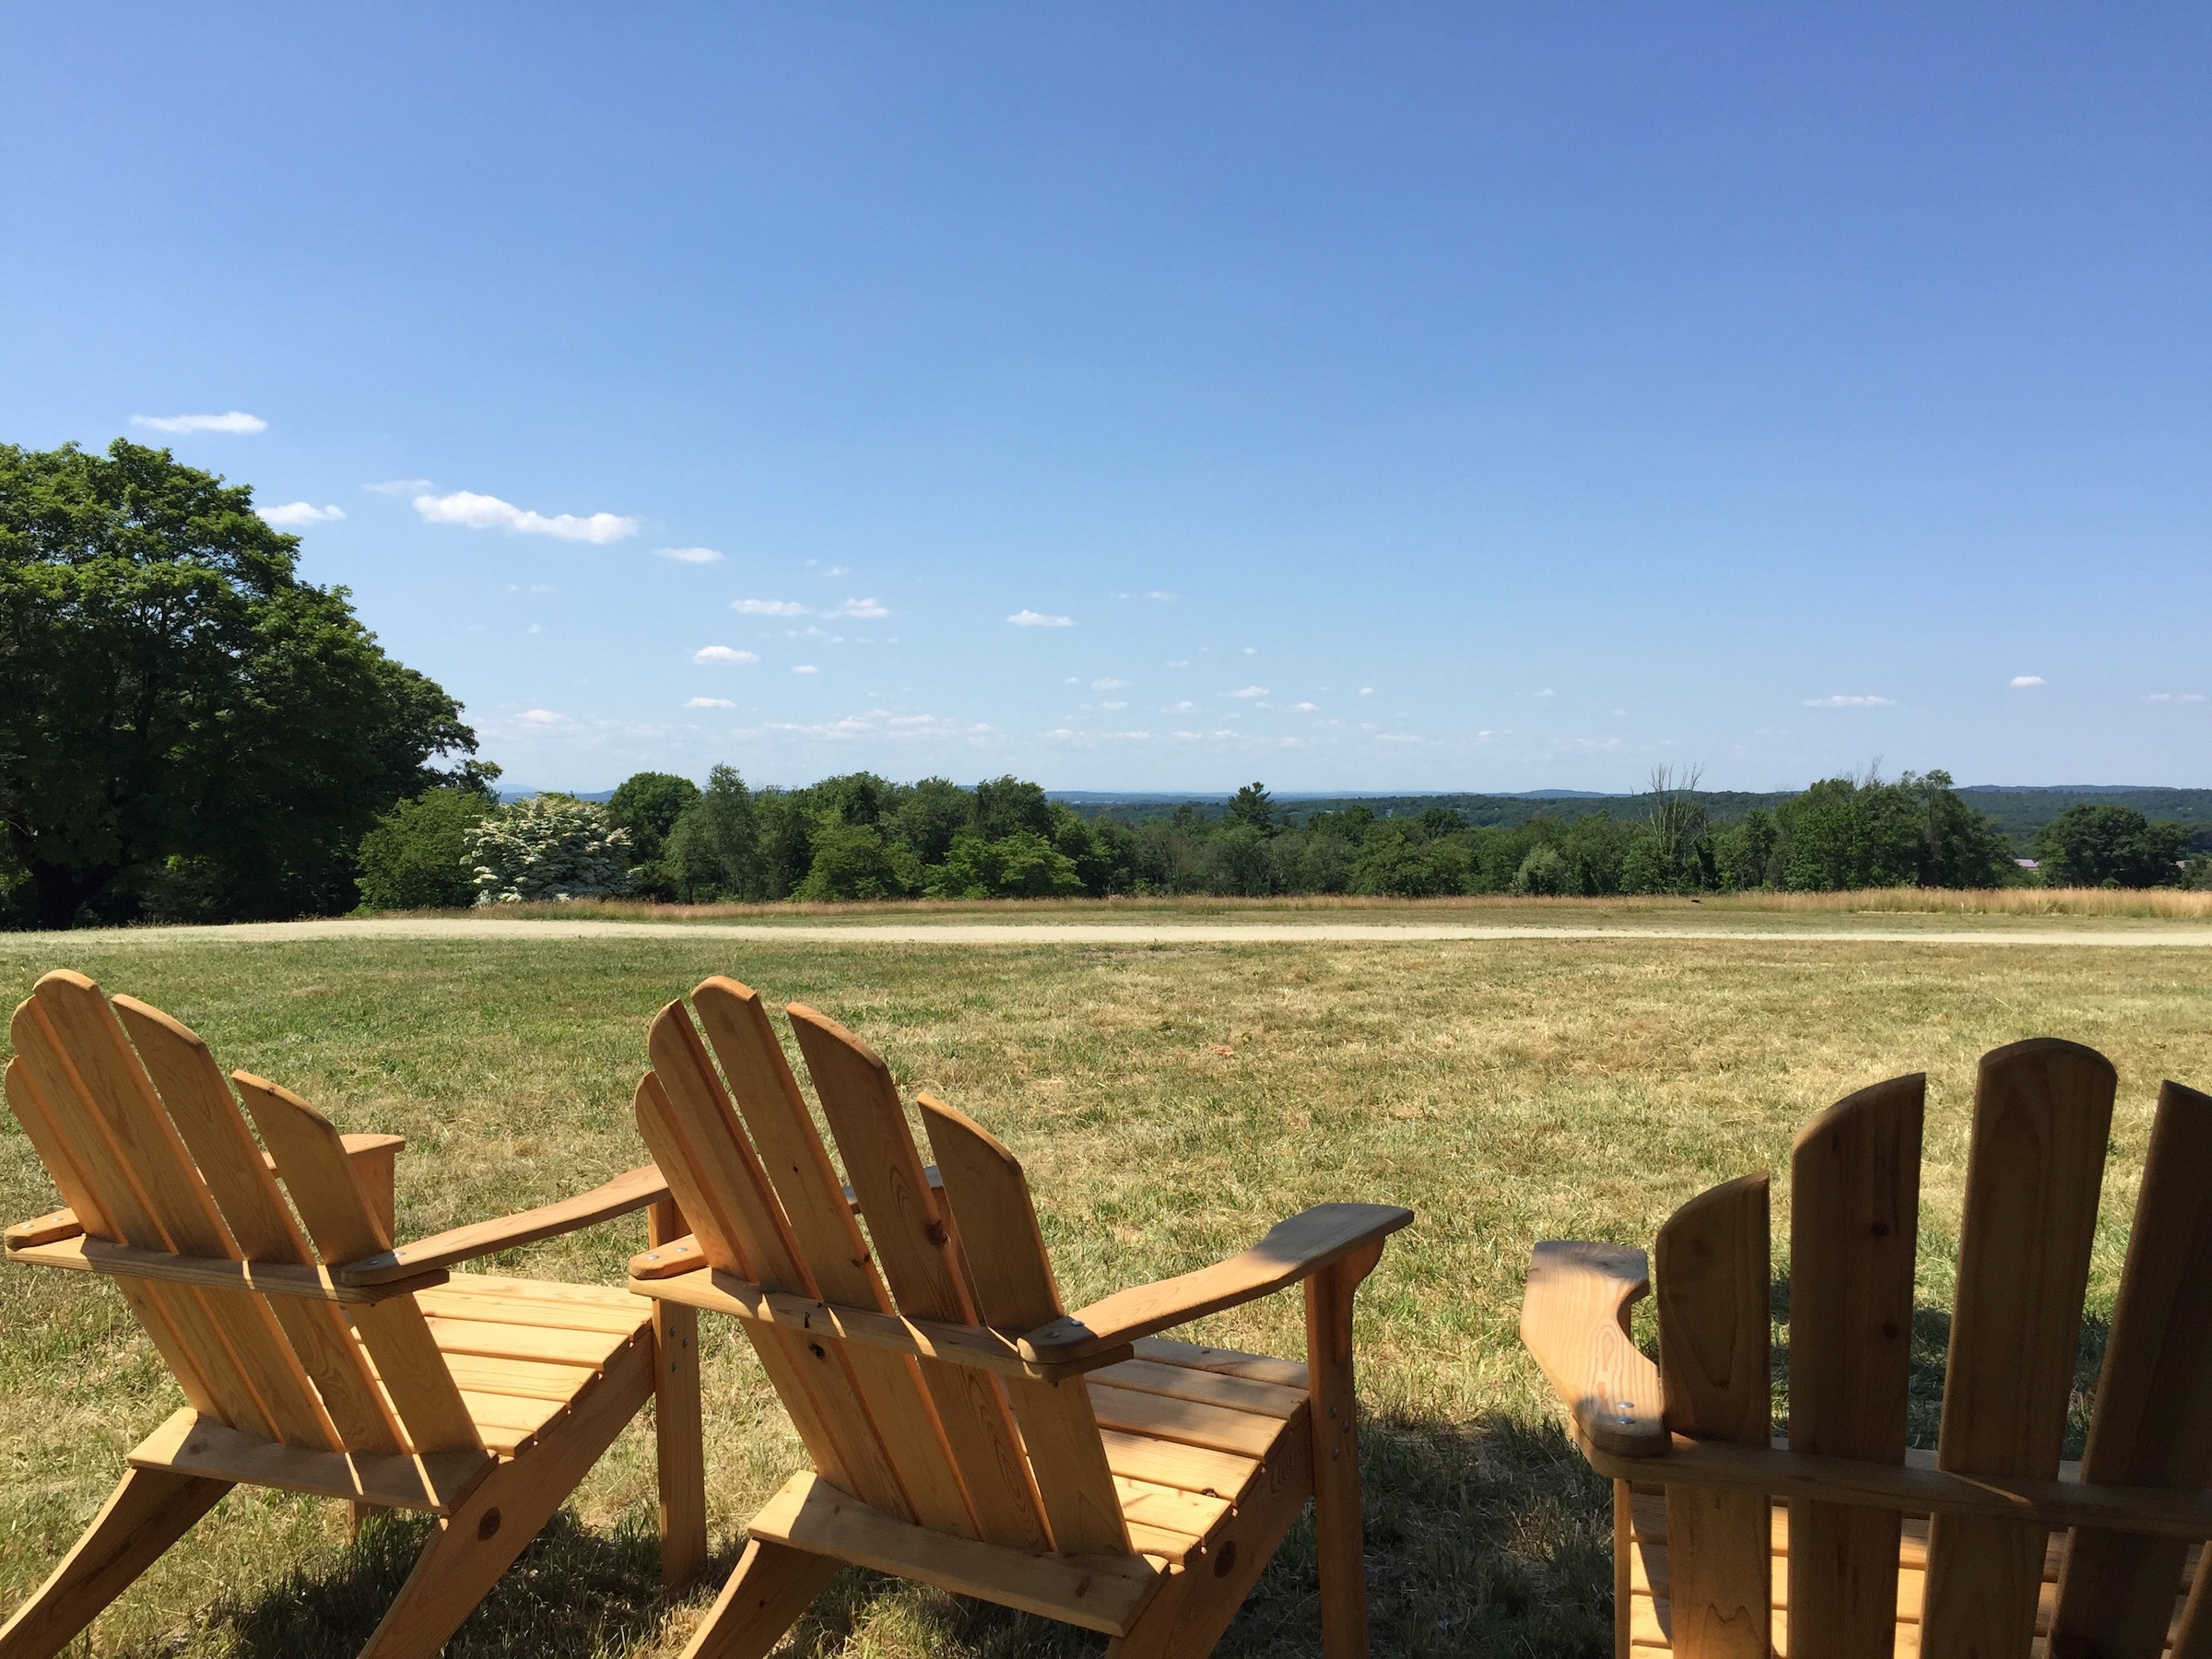 Pegan Hill adirondack chairs and view